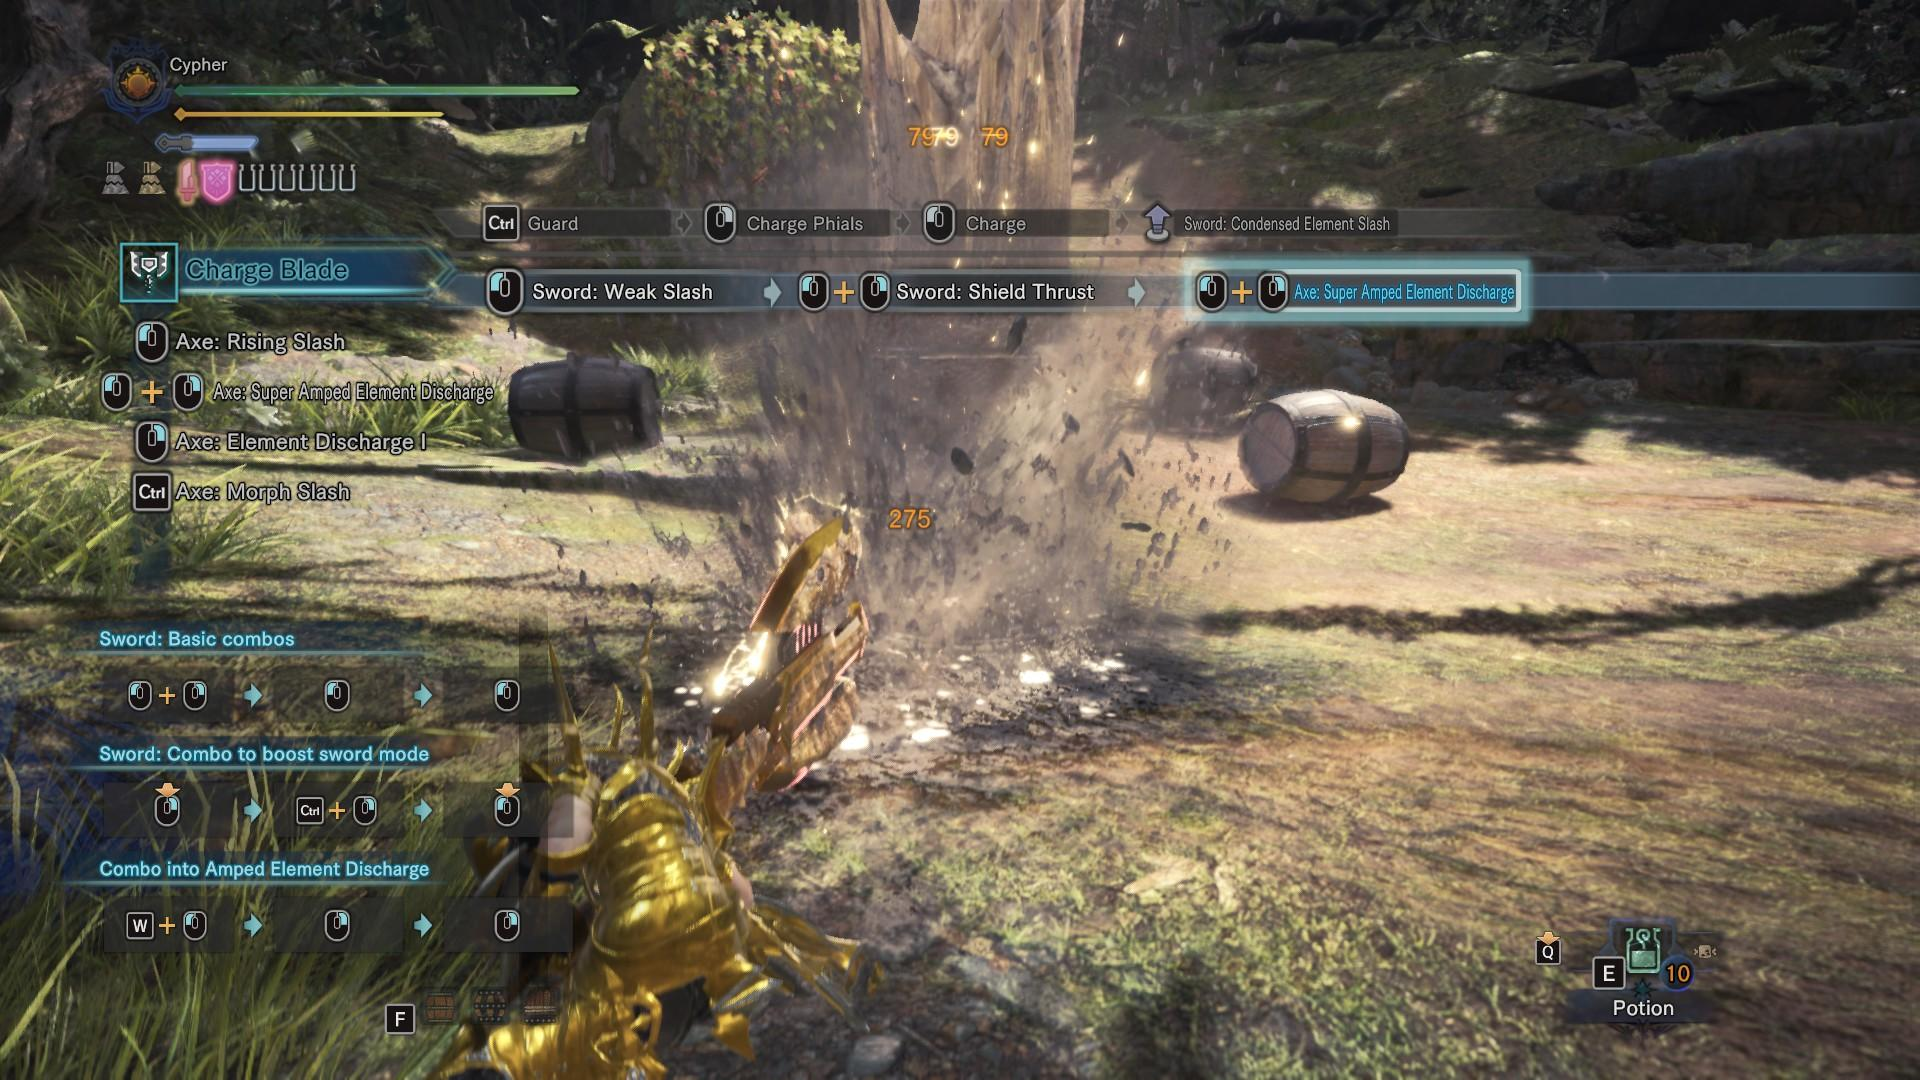 Monster Hunter: World - Personal Charge Blade Build: Panzer